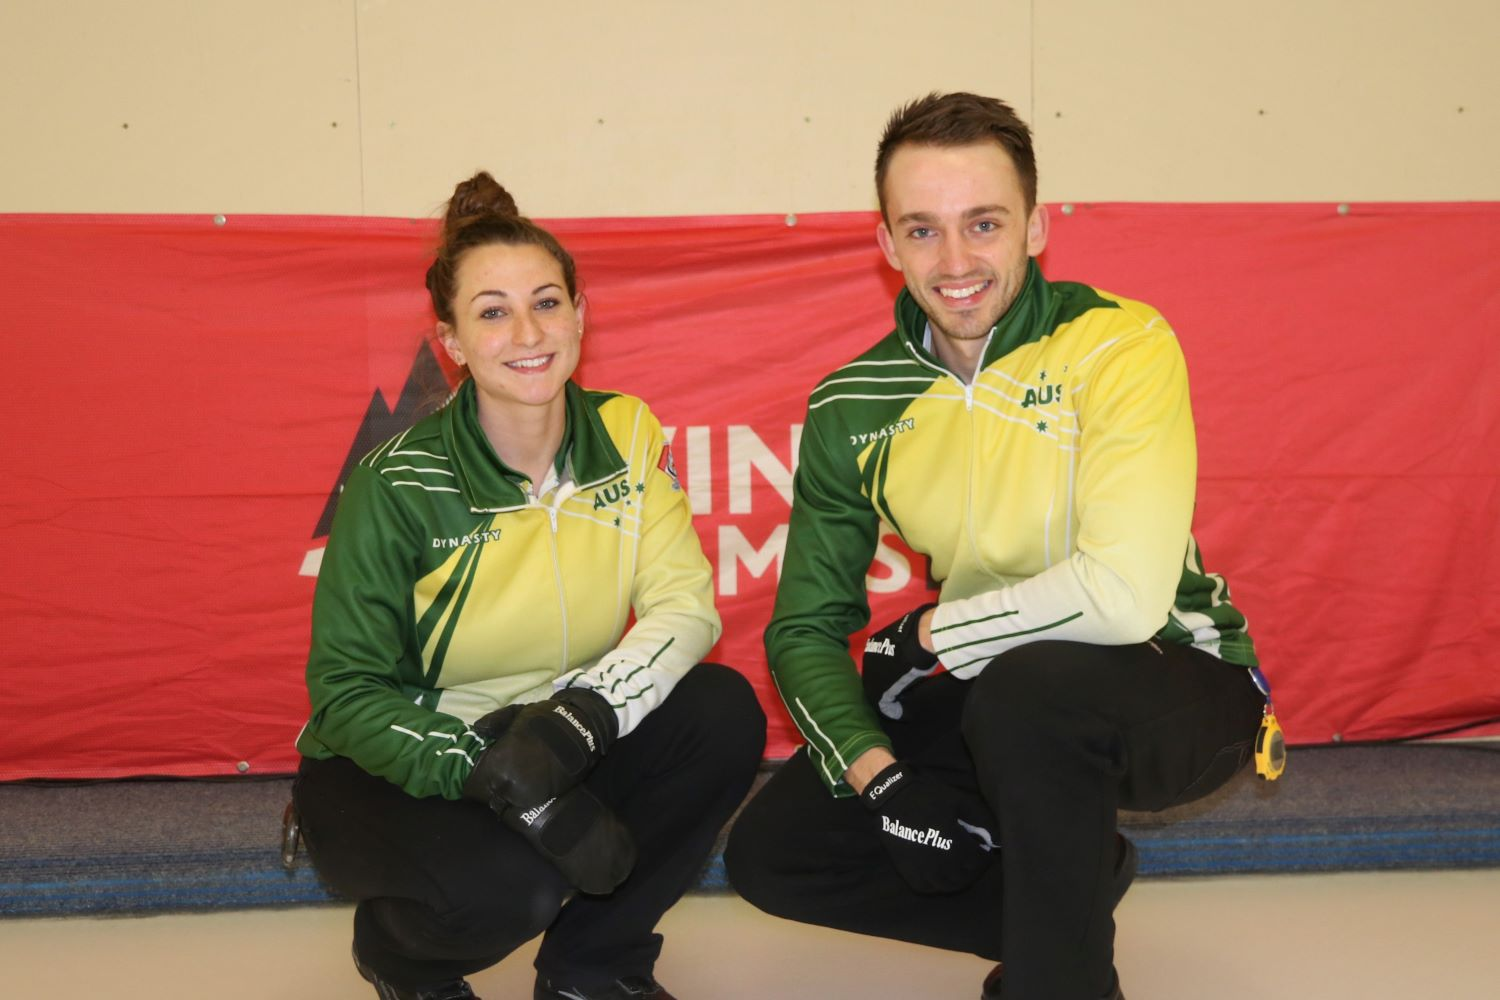 Team AUS1 - Tahli Gill and Dean Hewitt